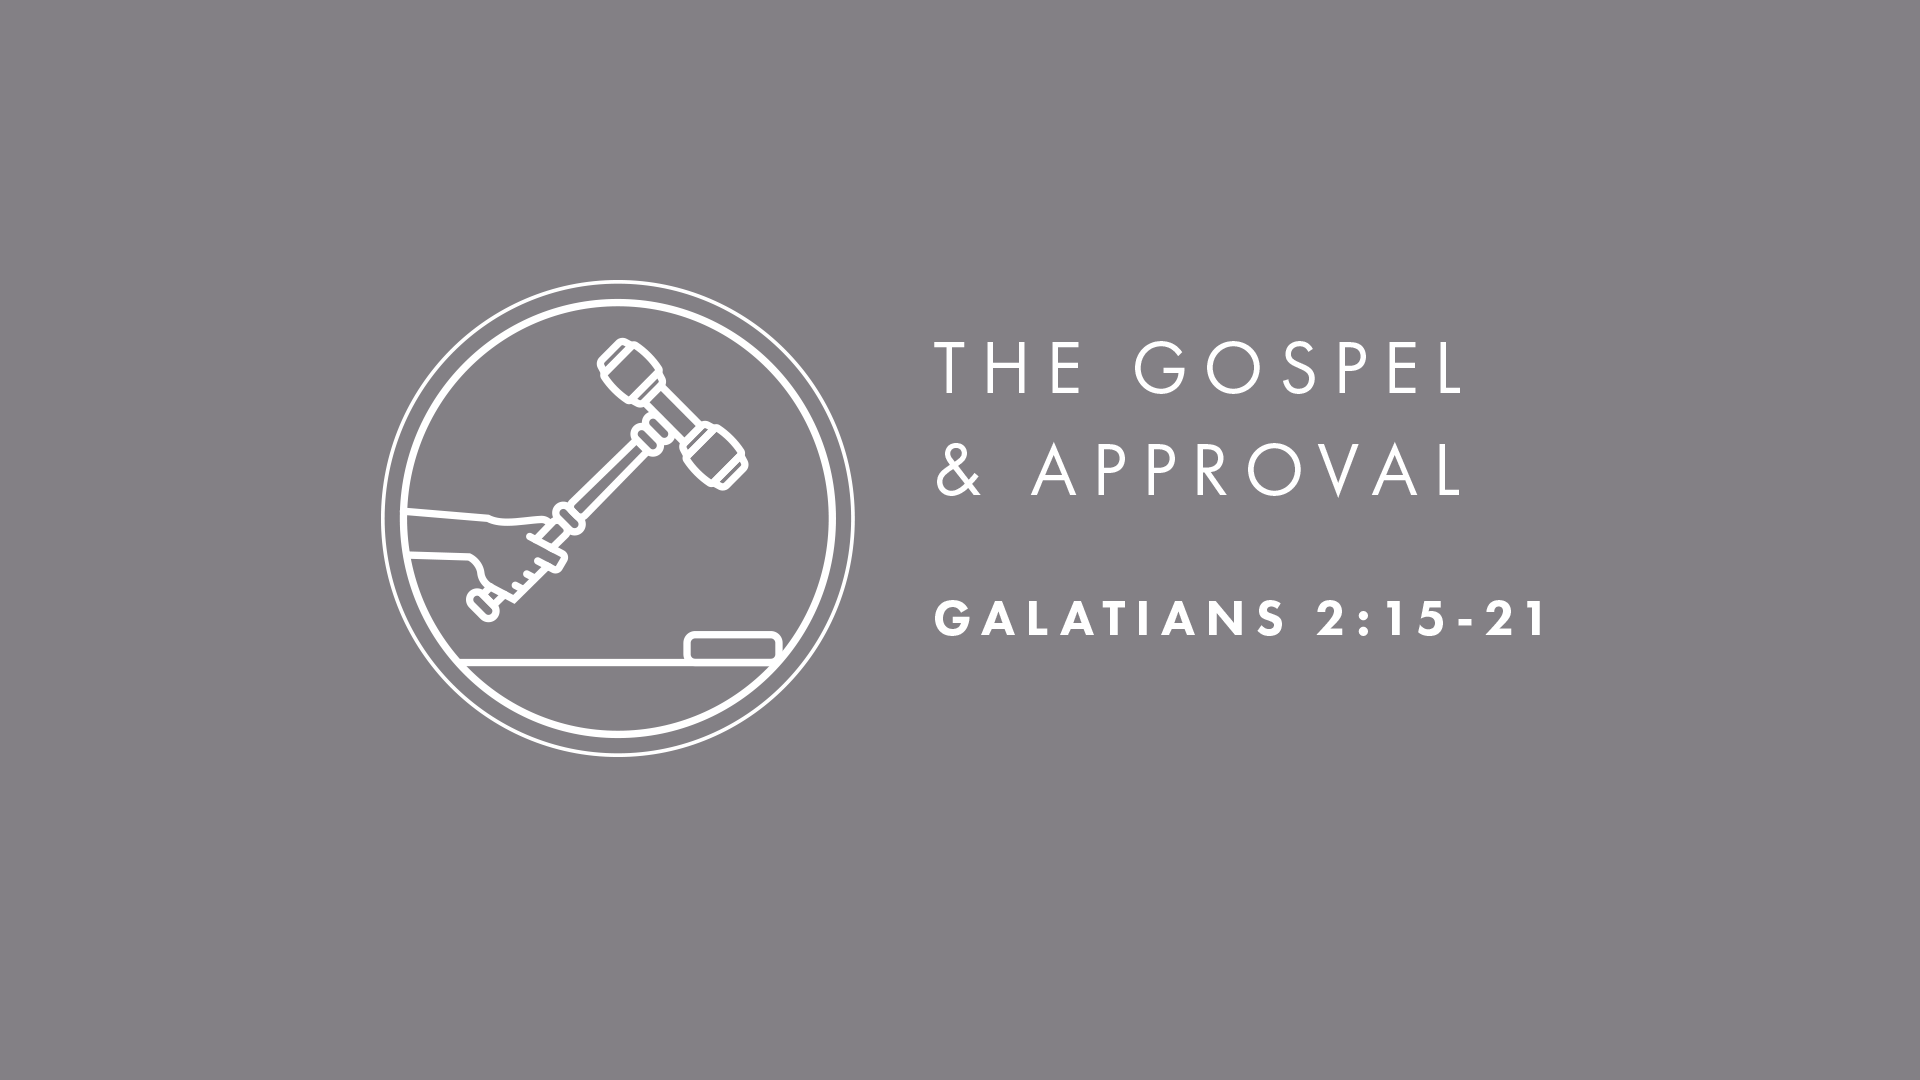 The Gospel and Approval